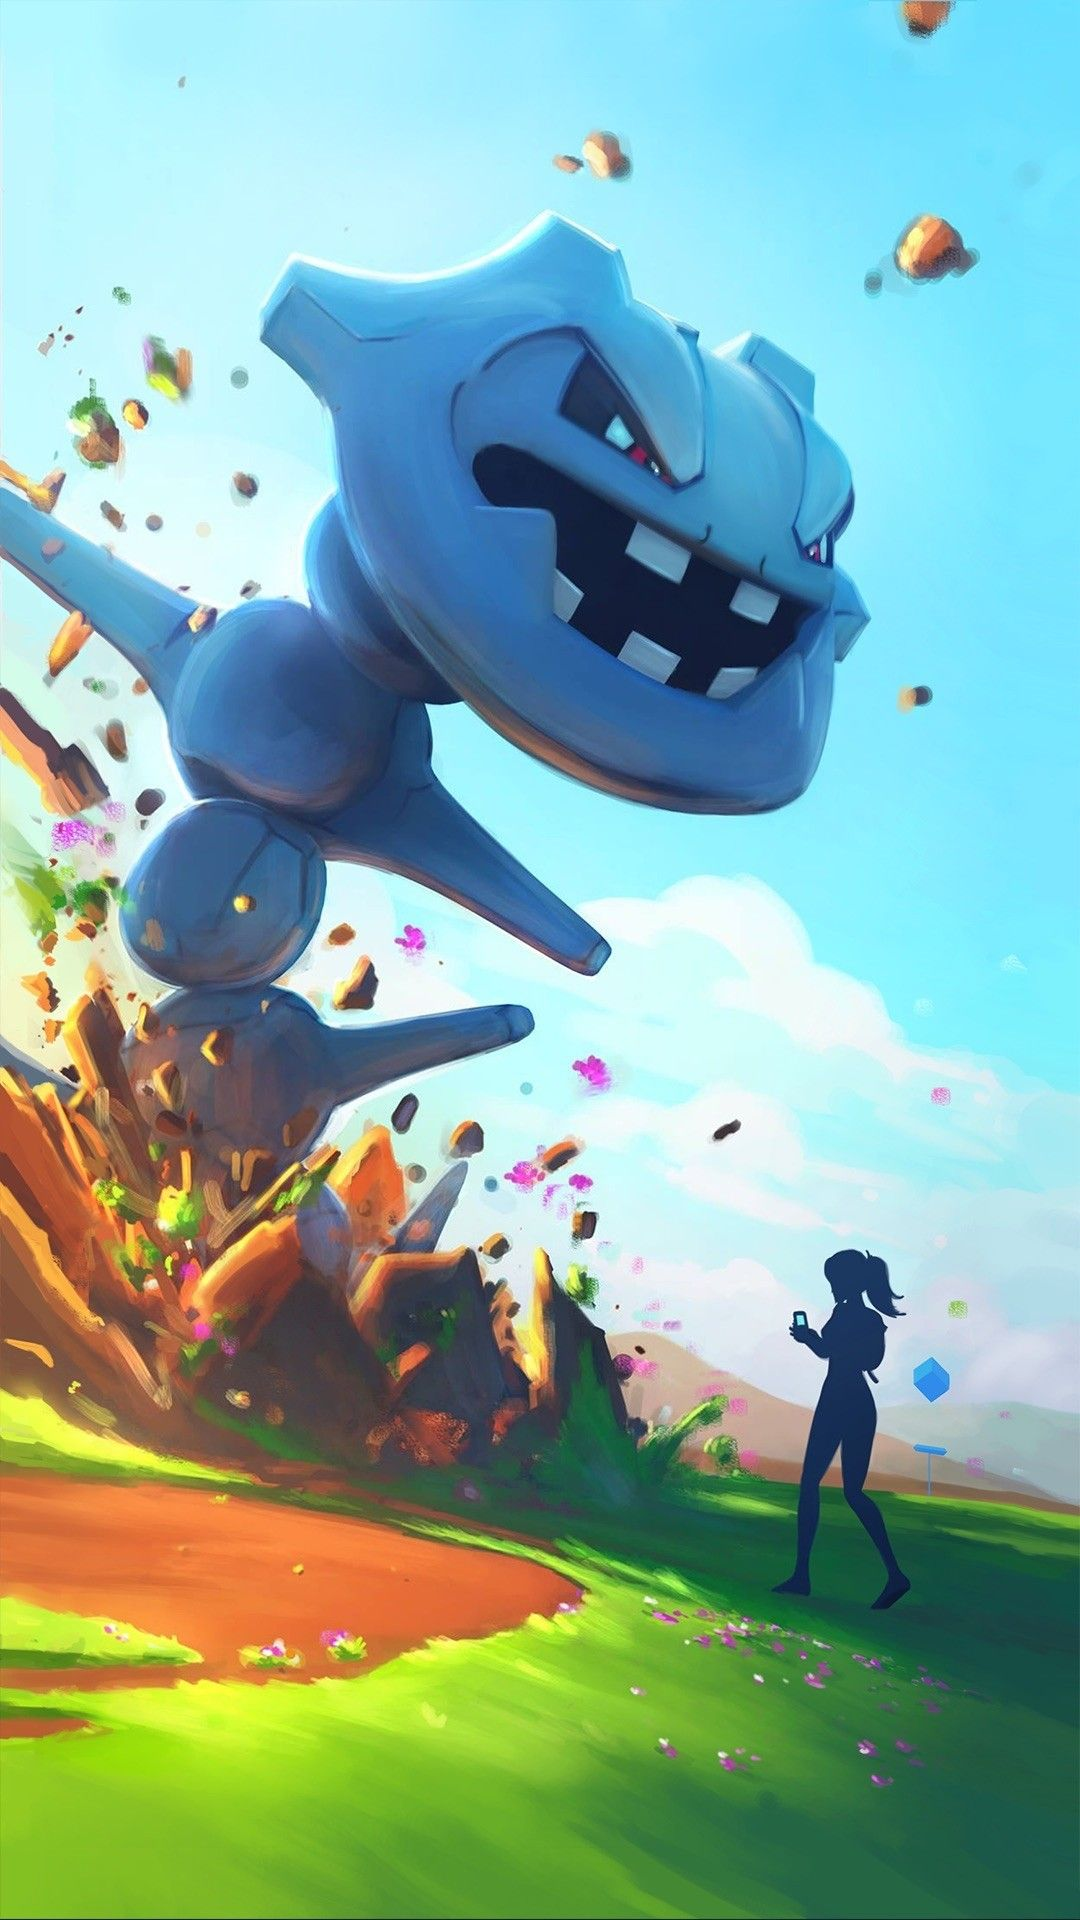 Official Pokémon Go wallpapers for 2018 | iMore